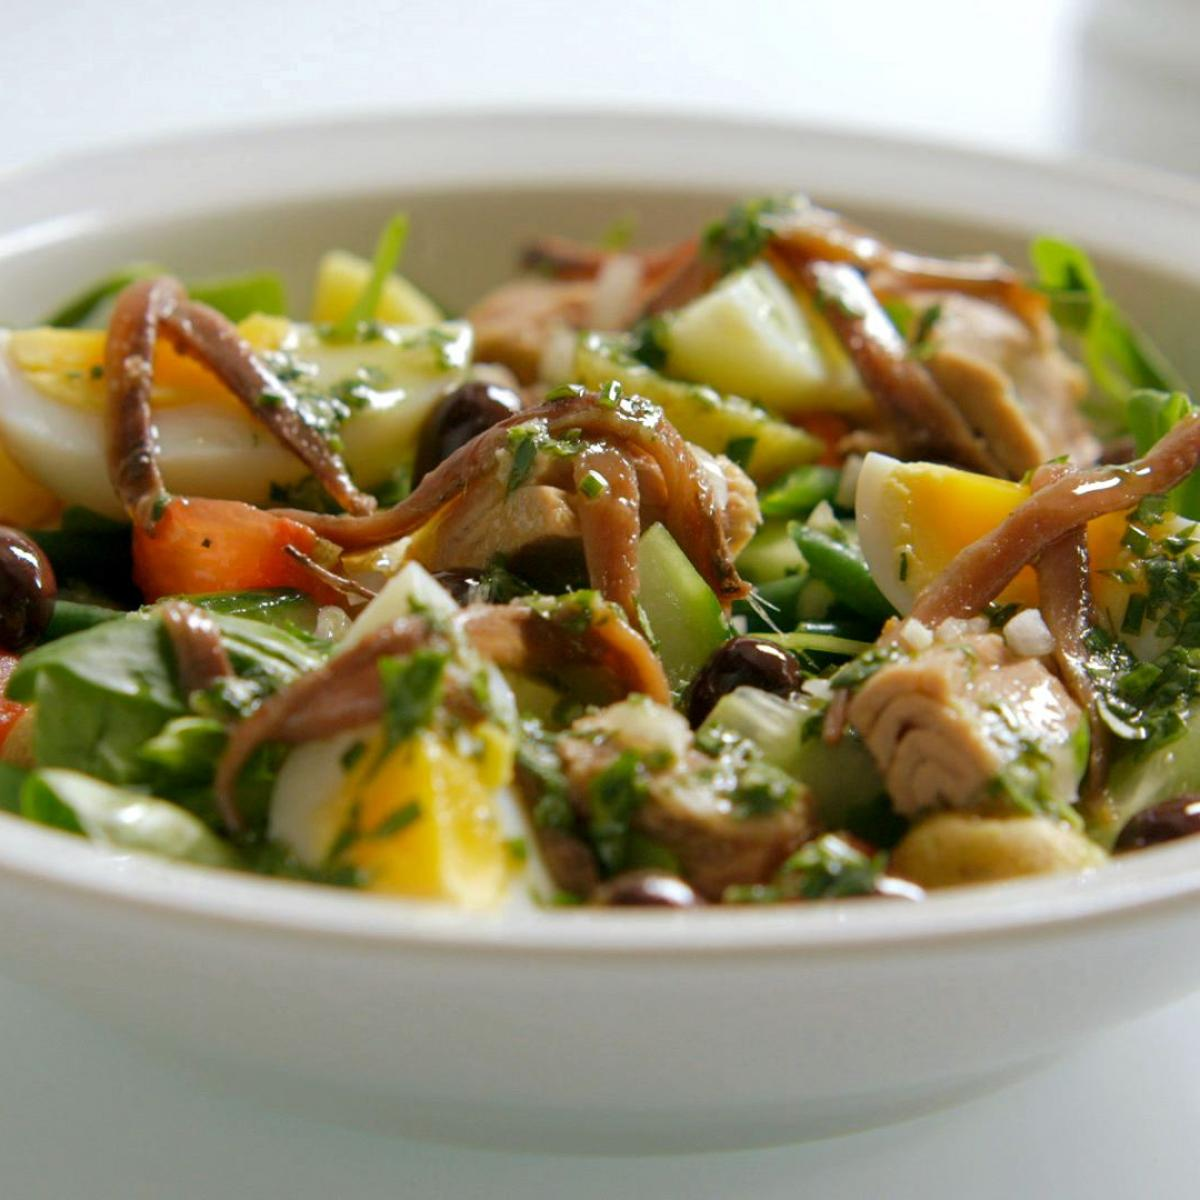 A picture of Delia's Salade Nicoise recipe